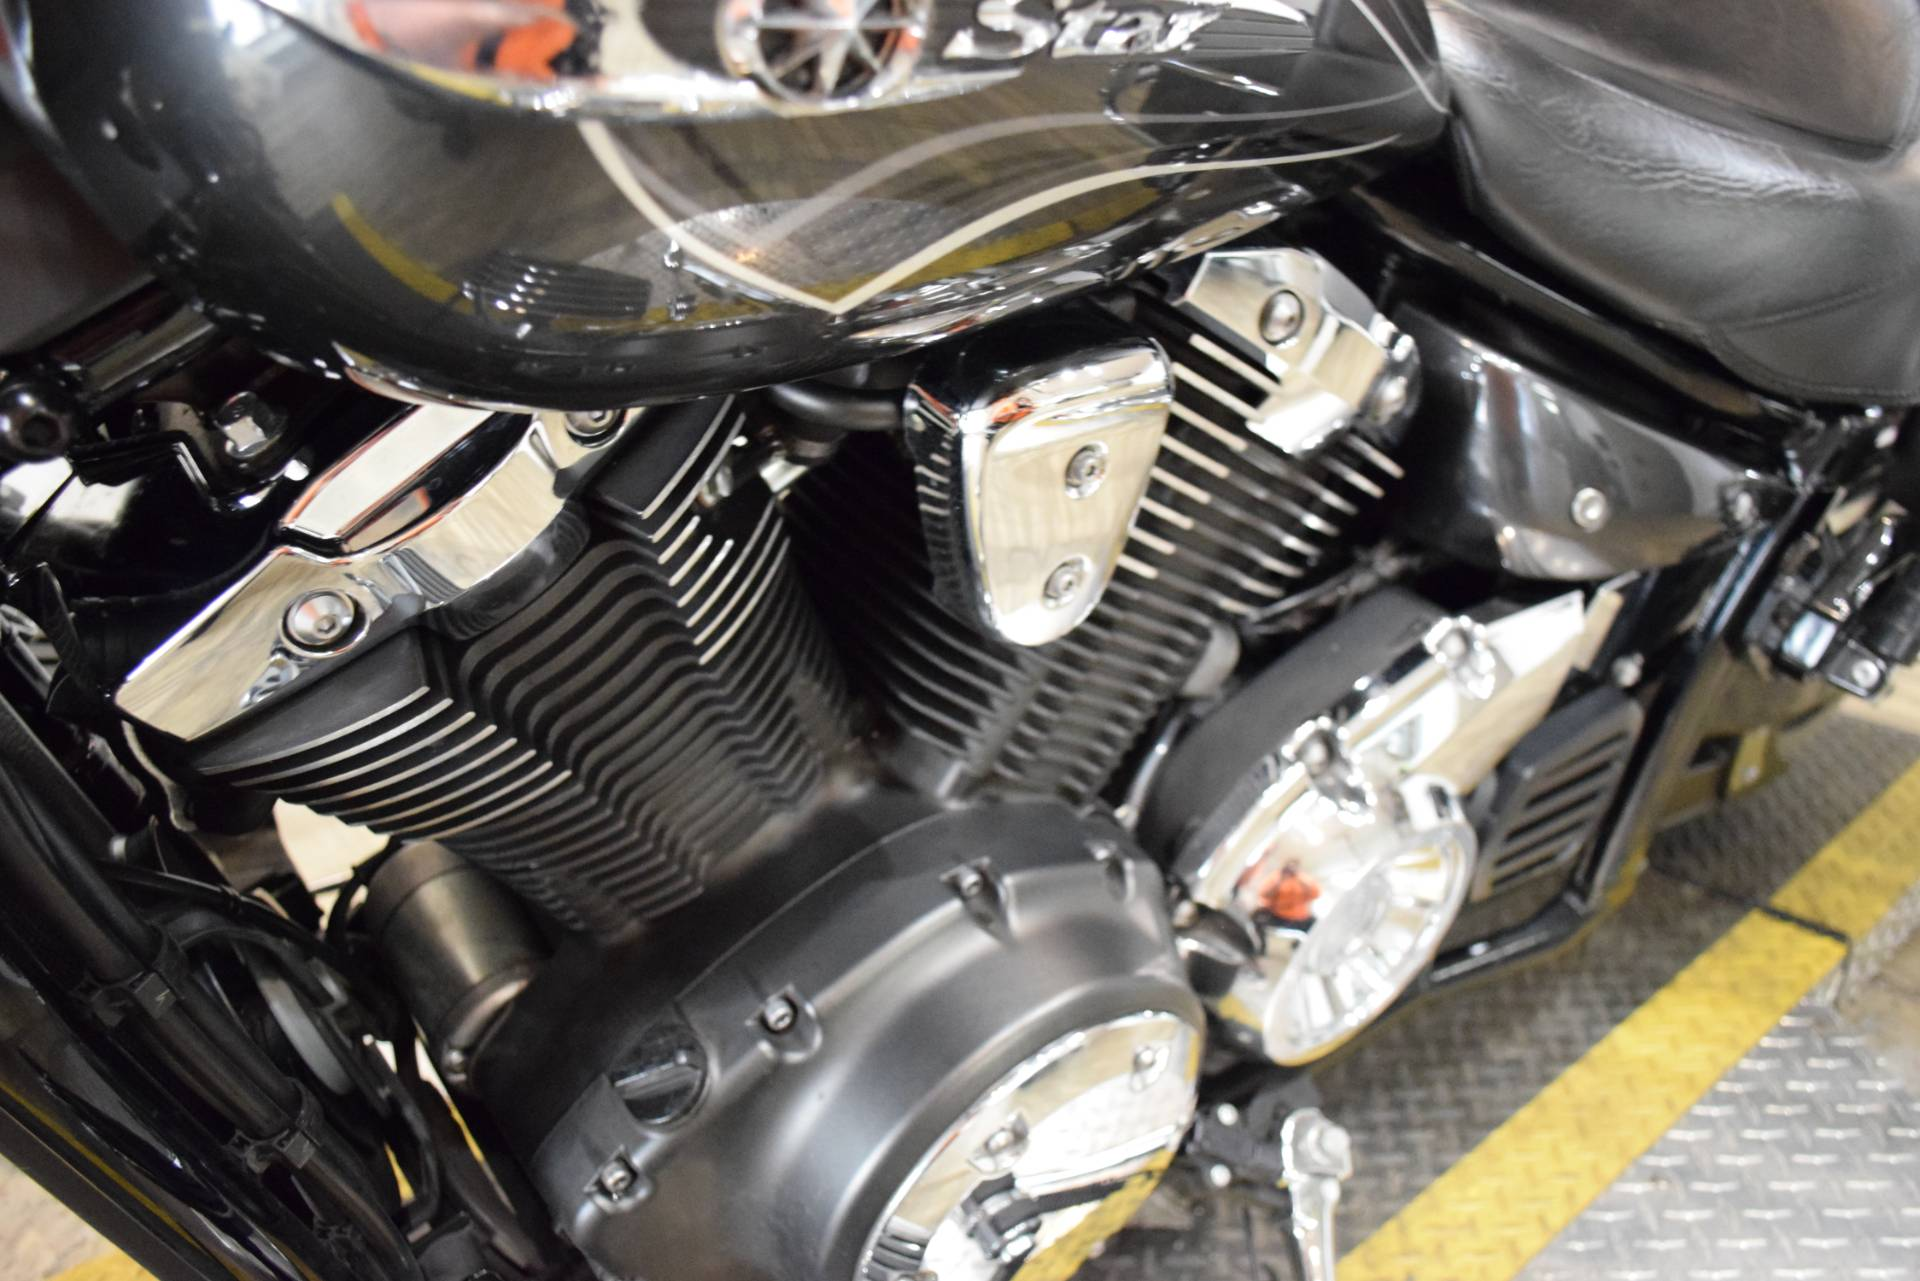 2012 Yamaha V Star 1300 Tourer in Wauconda, Illinois - Photo 19